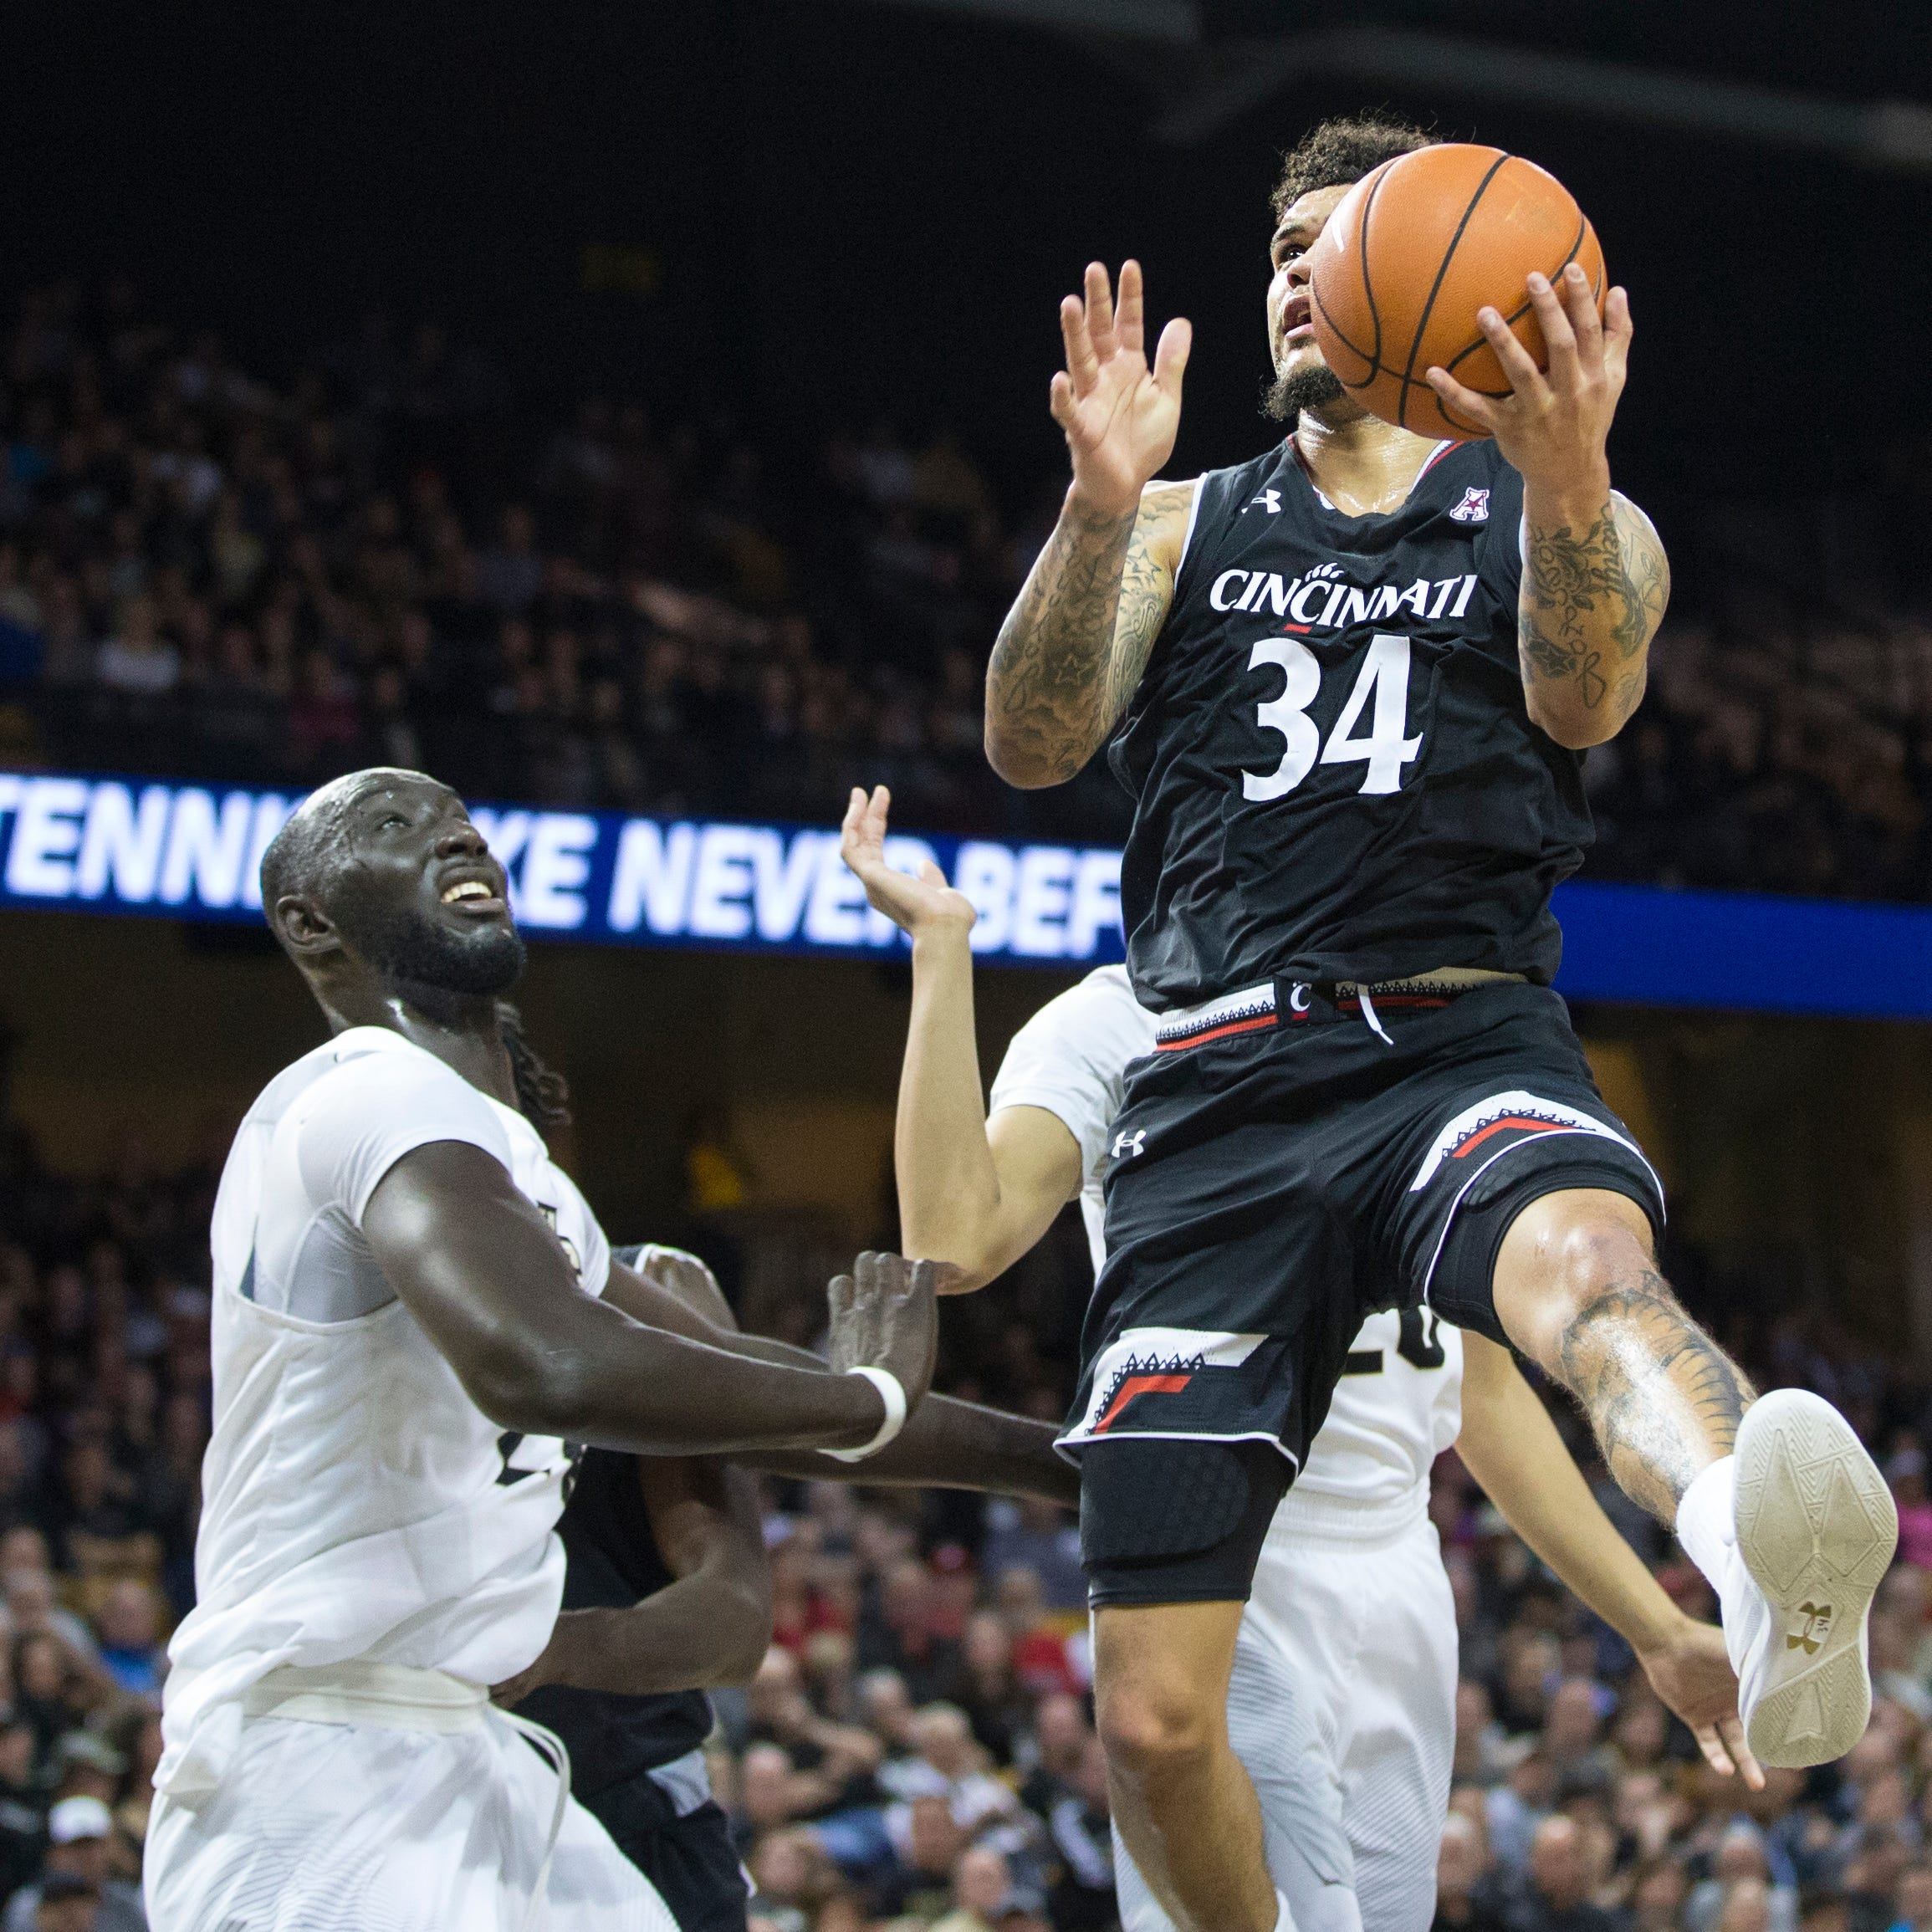 Central Florida Knights stop Cincinnati Bearcats as fans rush floor